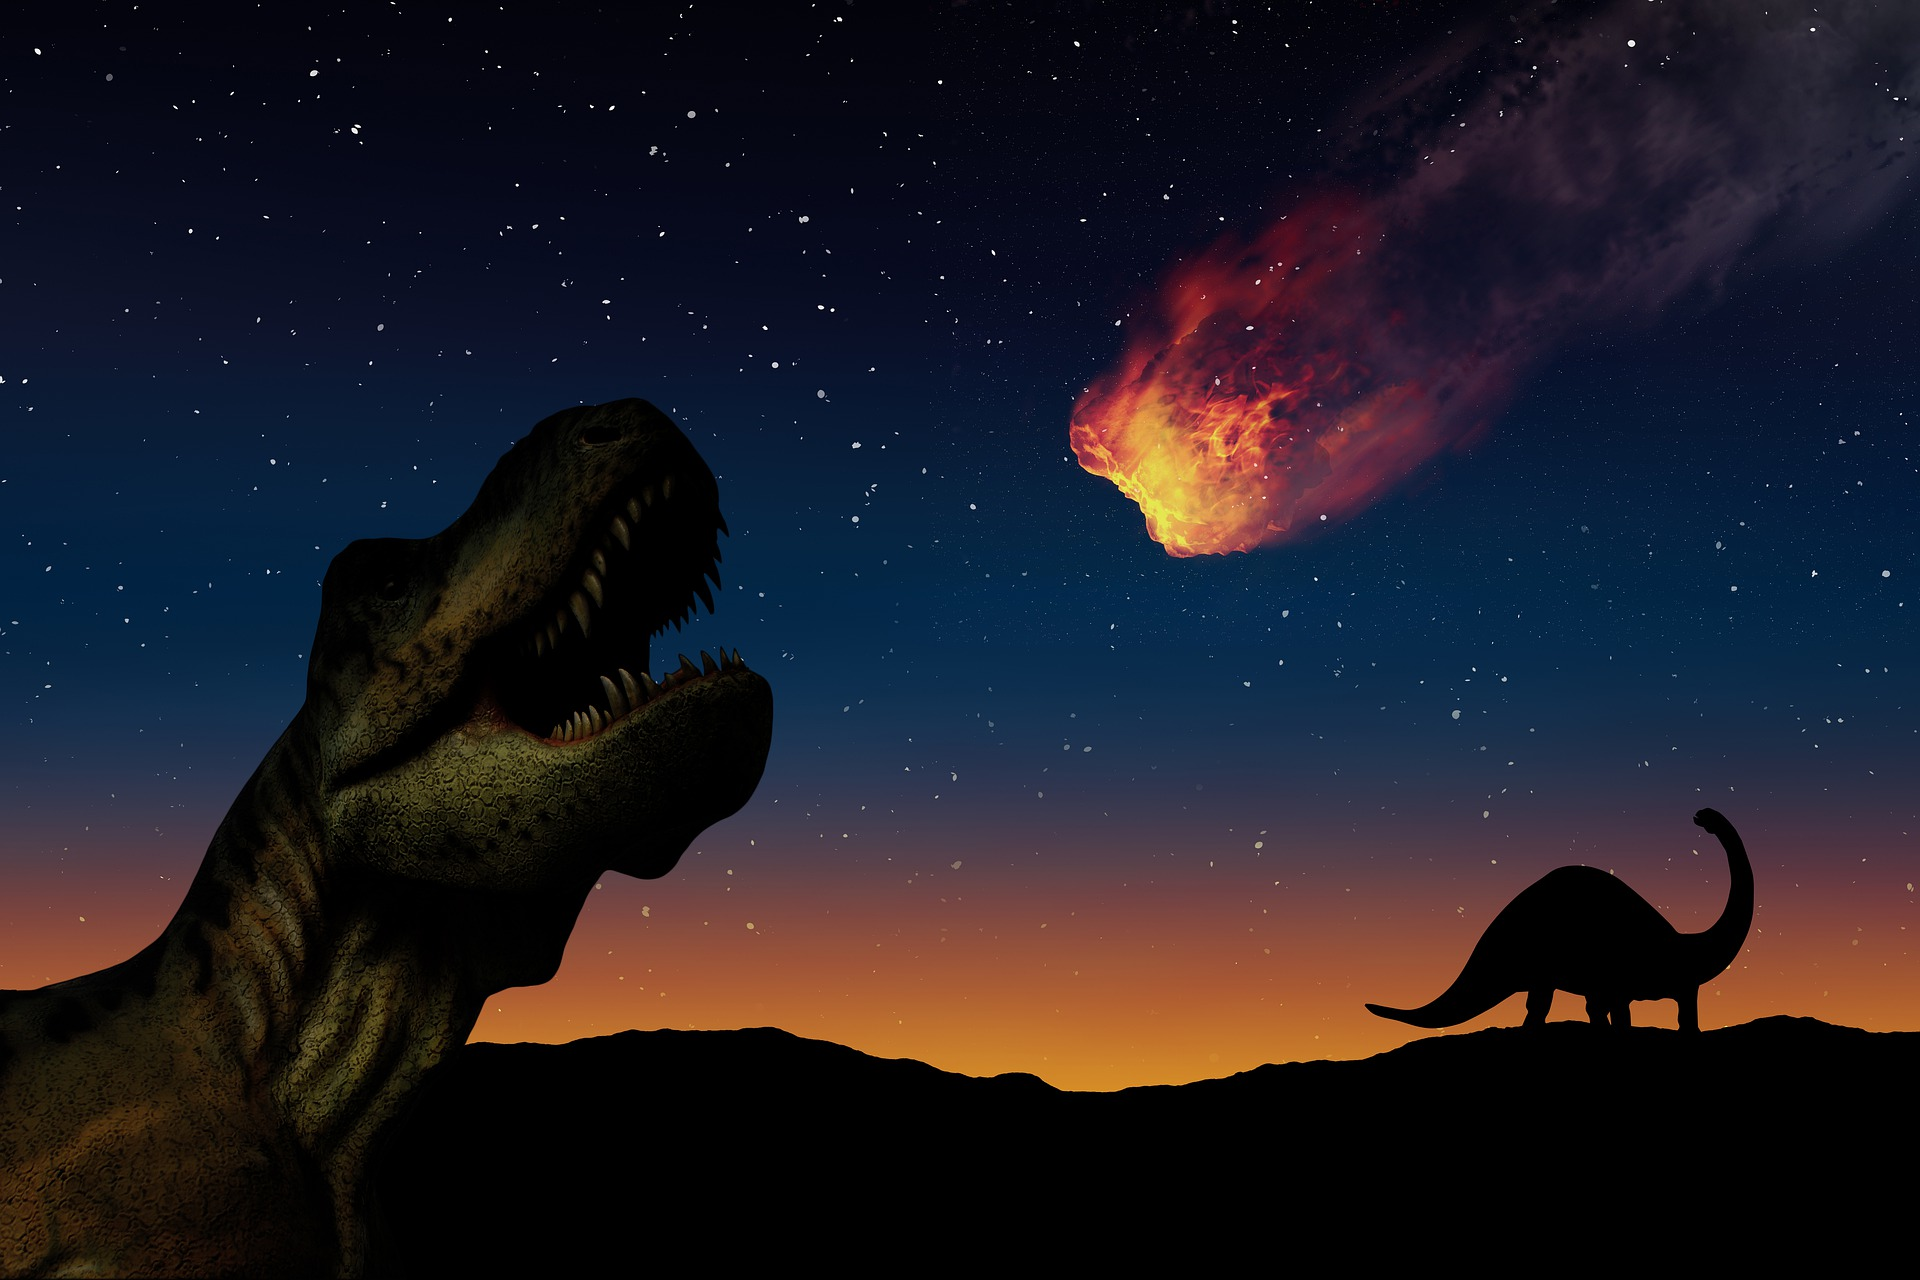 Dinosaur-killing asteroid